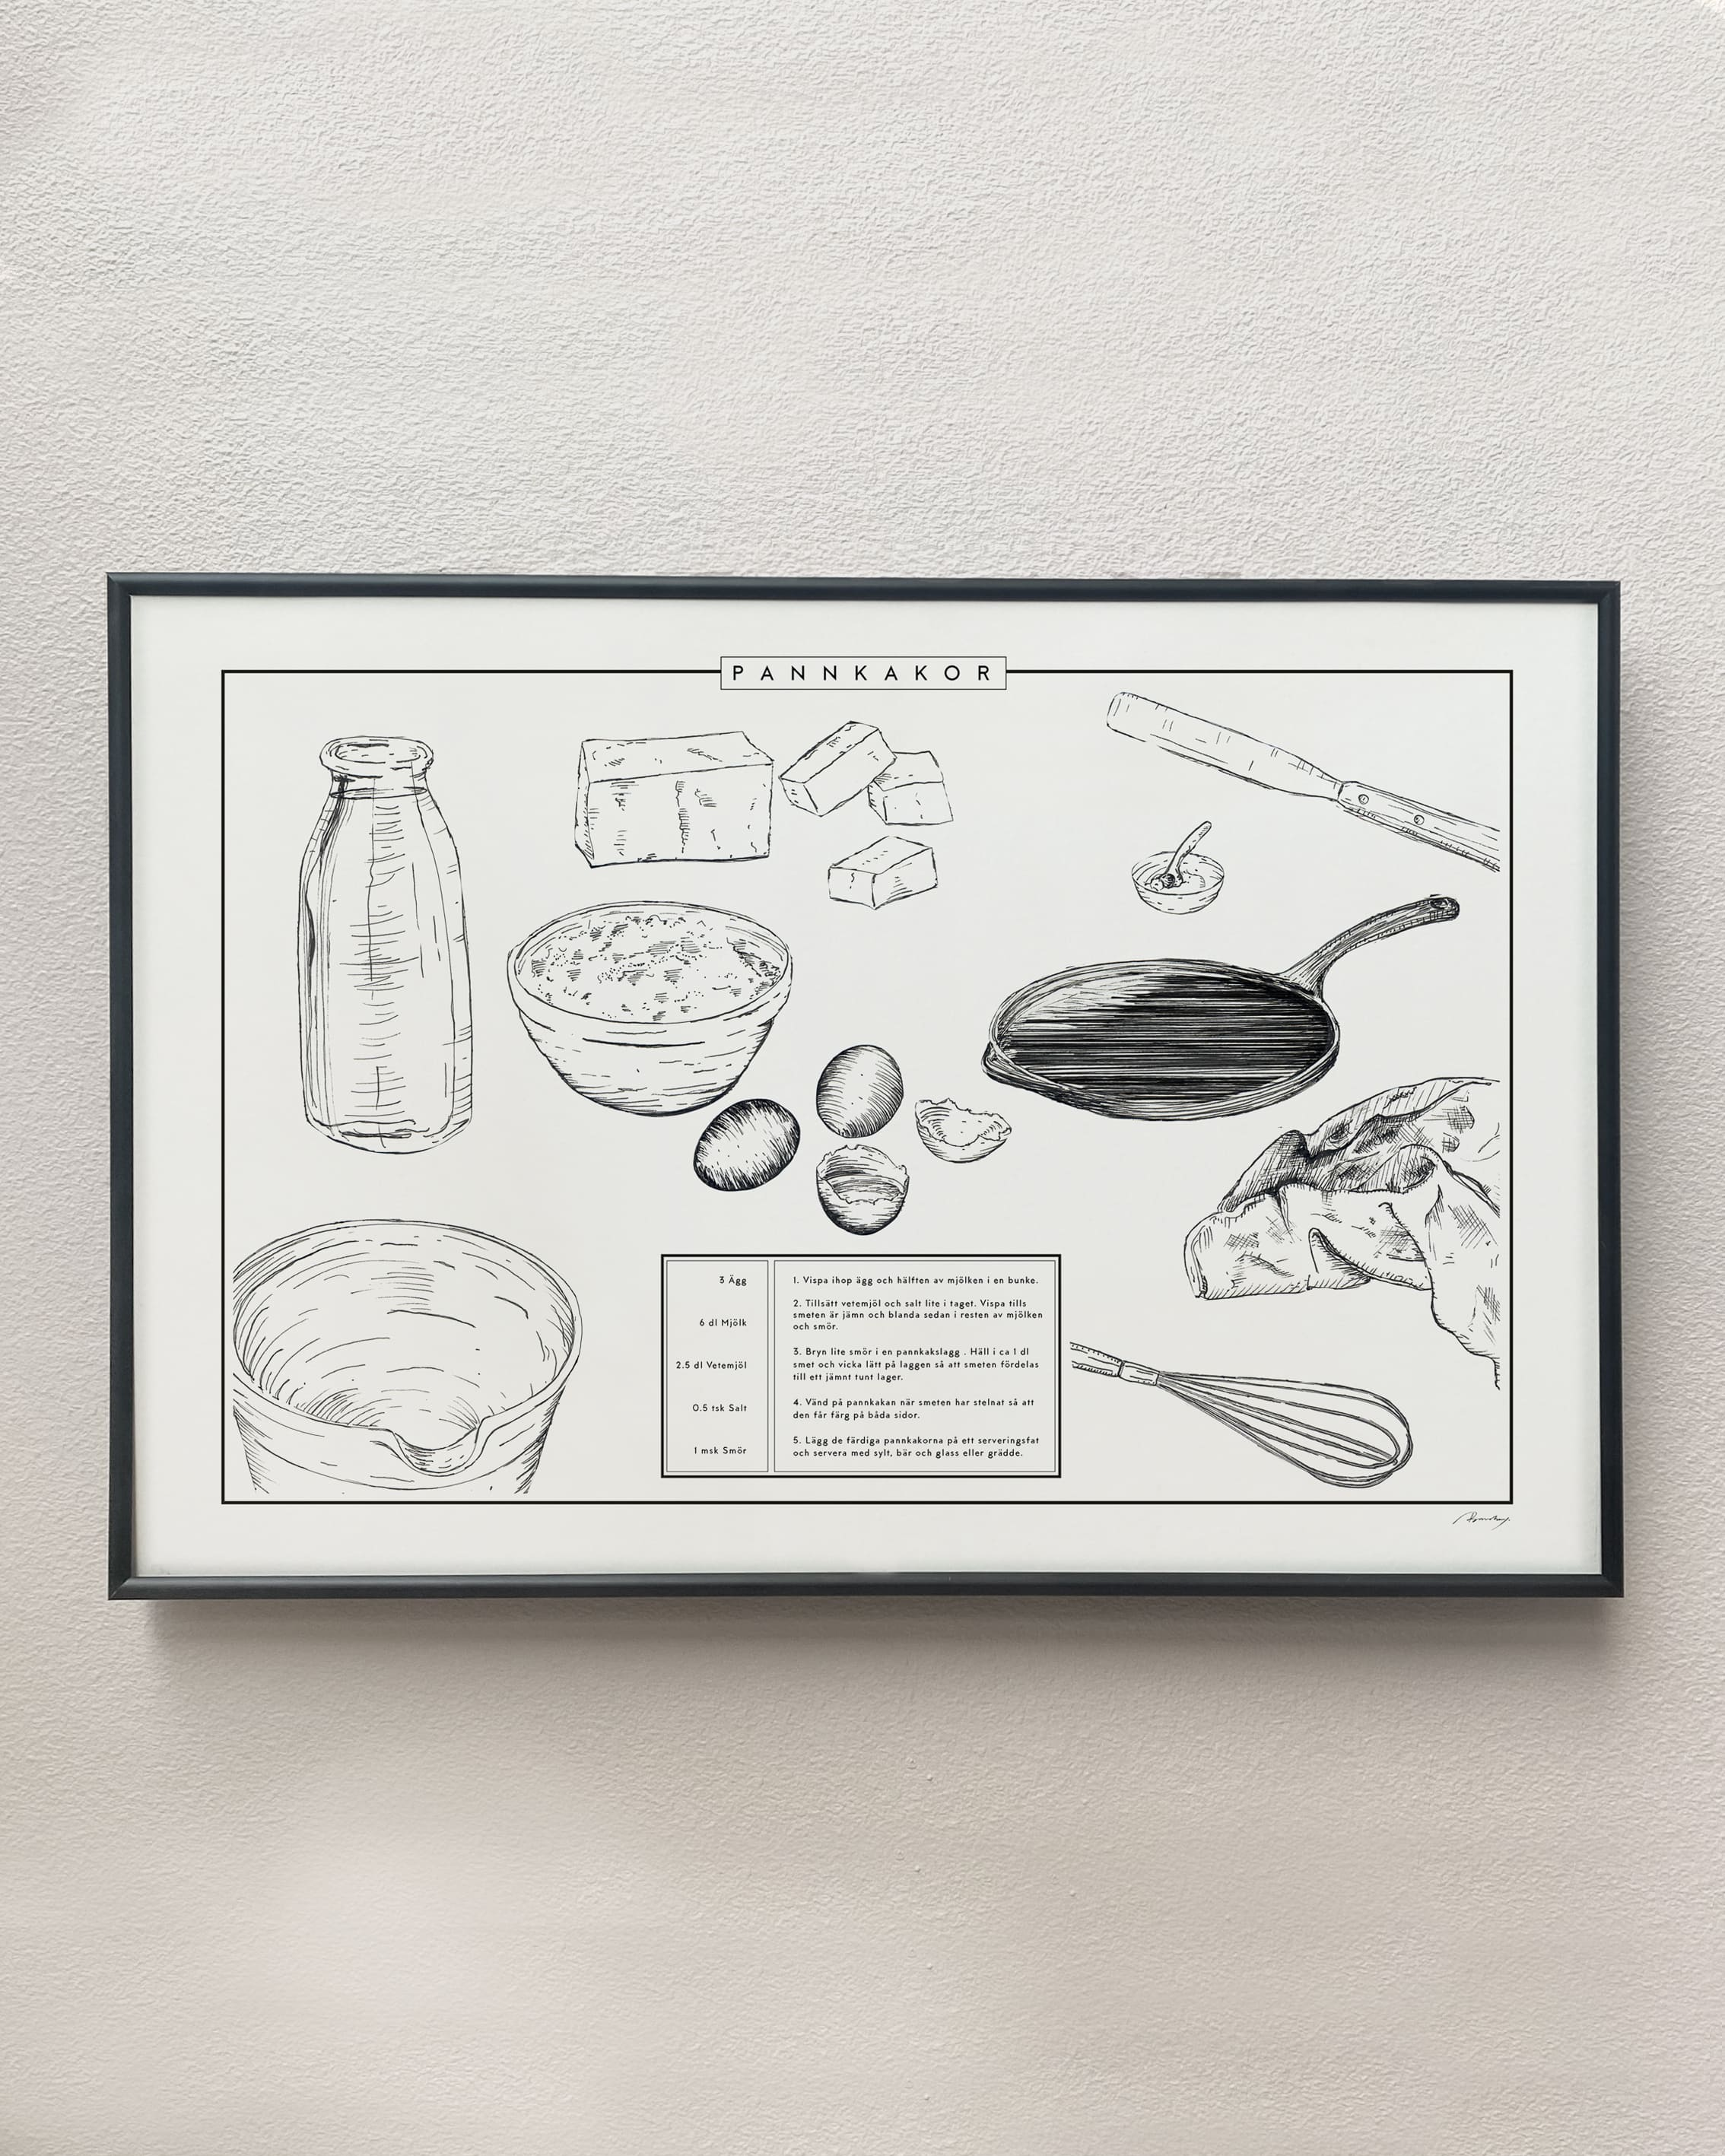 pancake recipe kitchen poster